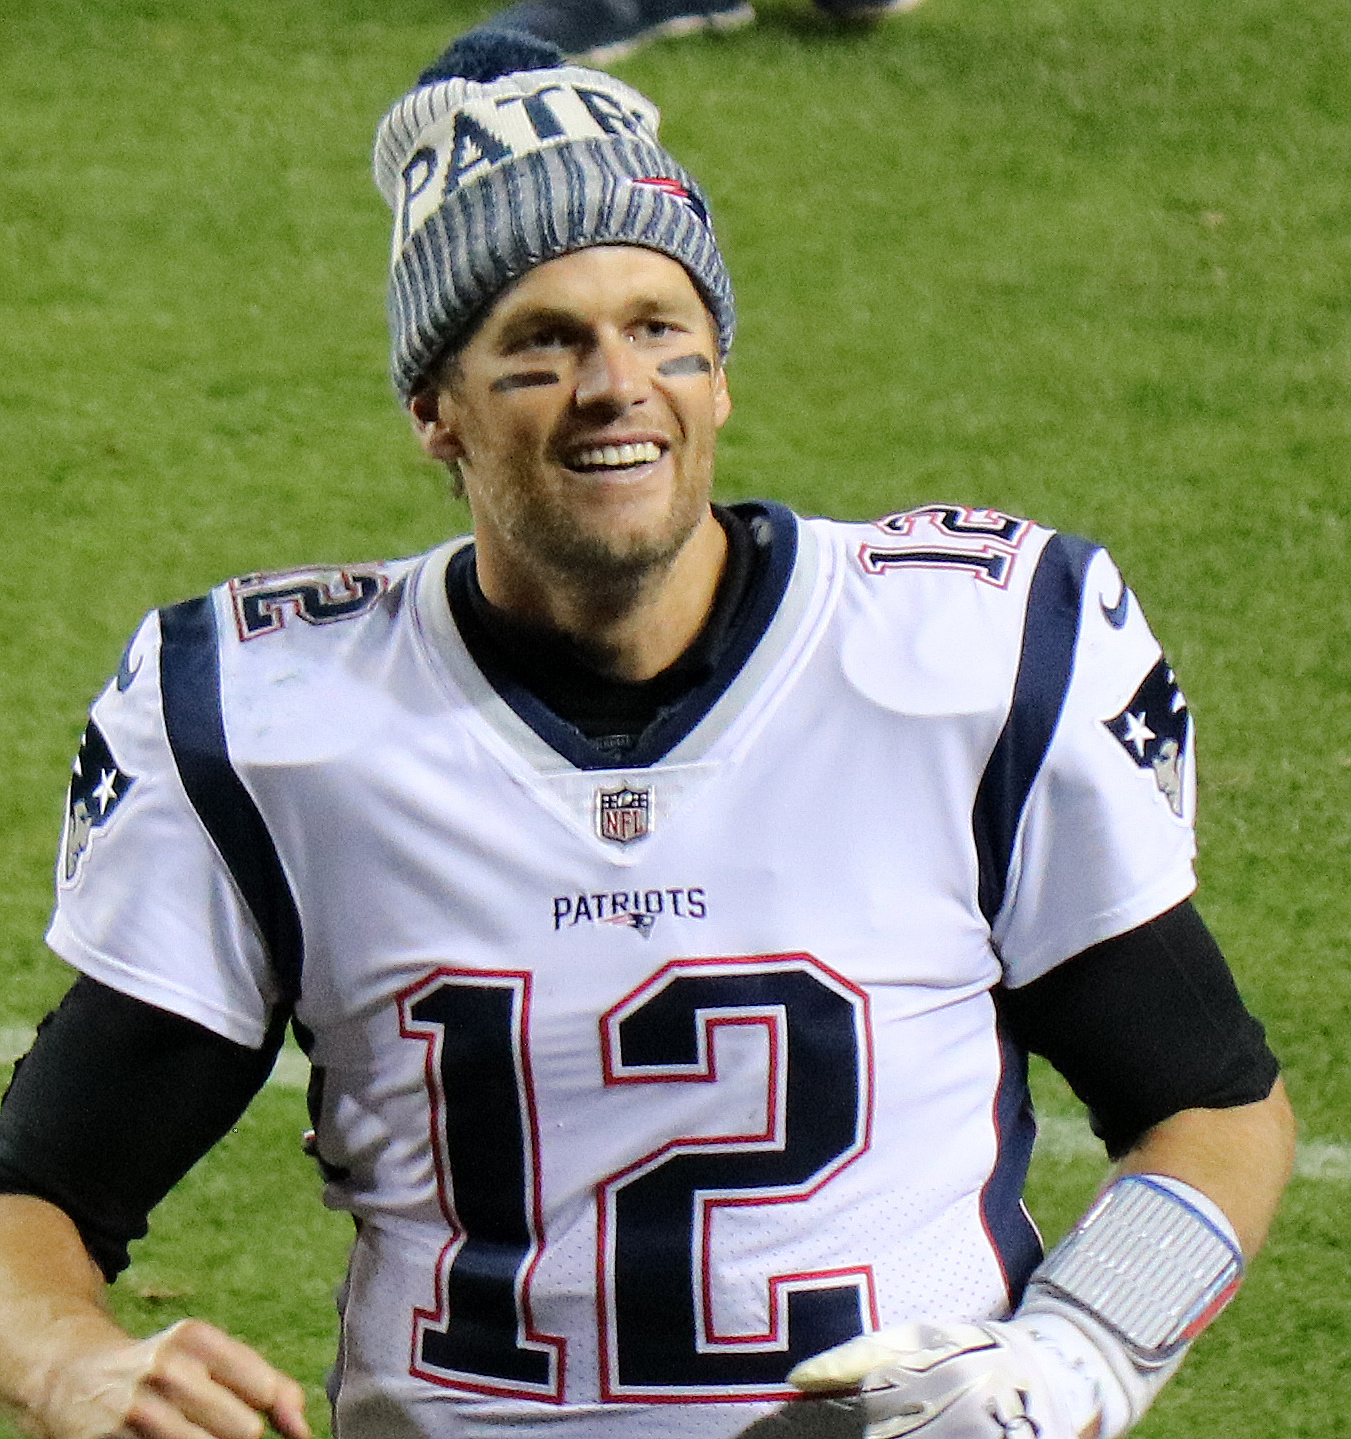 Tom Brady will go for yet another Super Bowl victory next week (Photo courtesy of Wikimedia Commons)